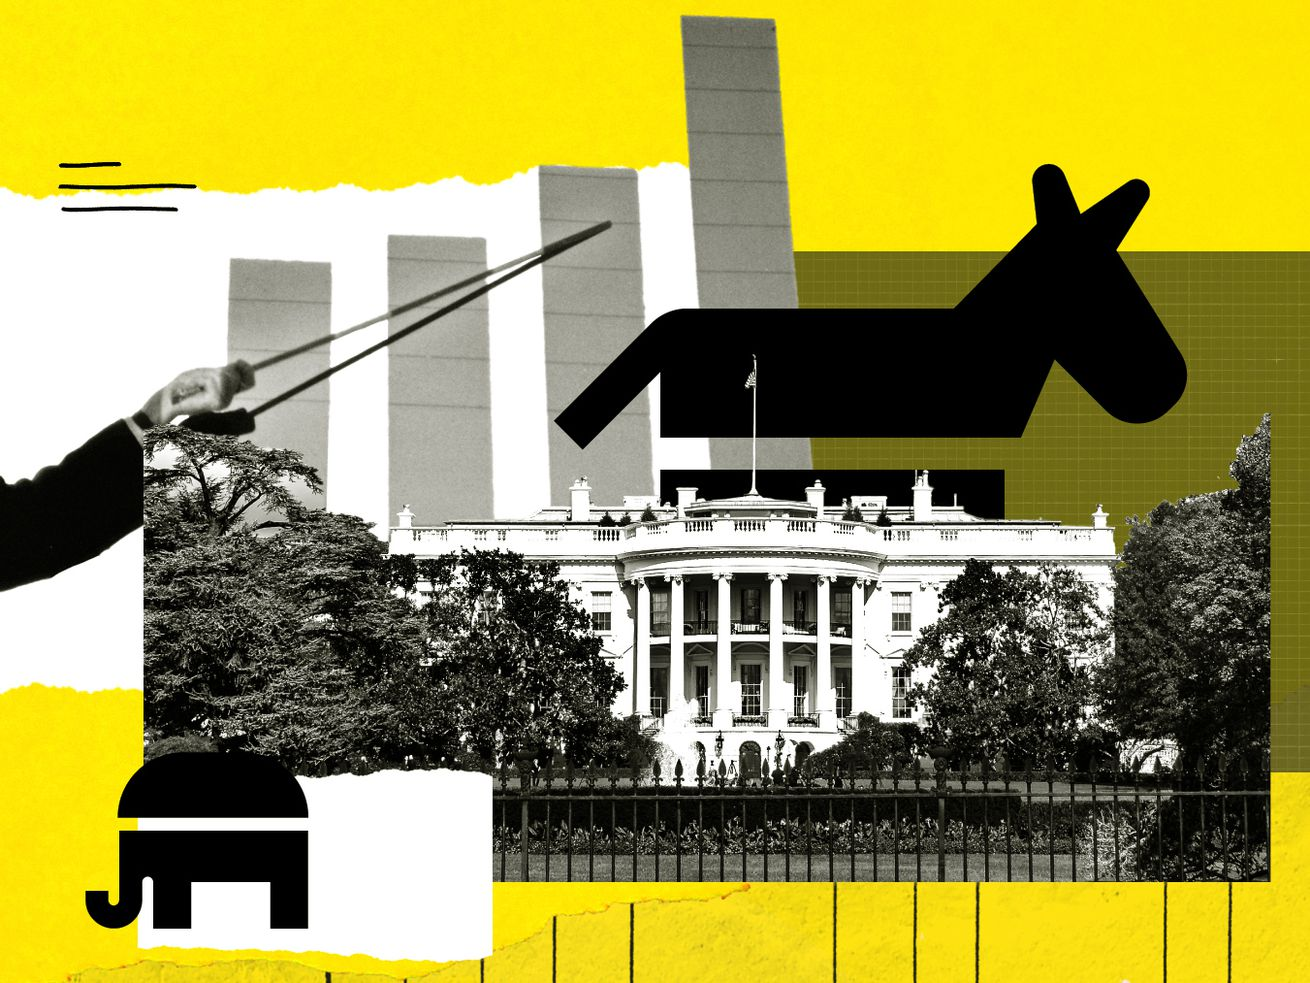 A photo illustration showing the White House, a donkey, an elephant, and a bar chart.